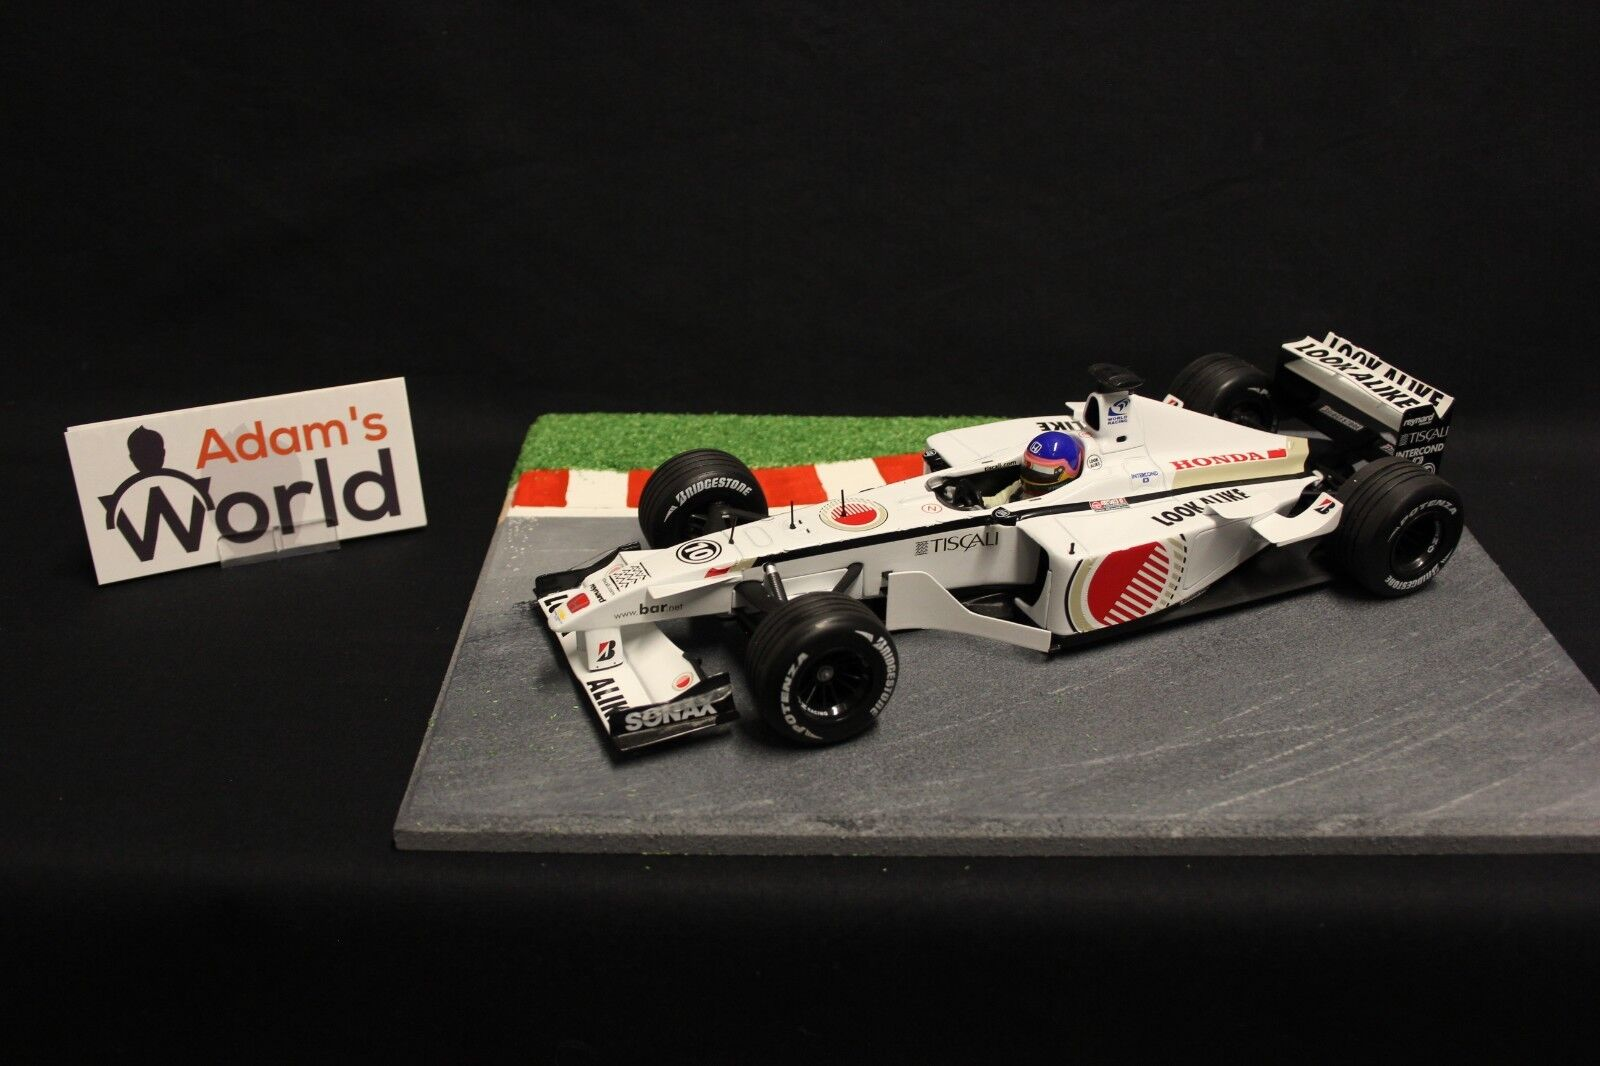 Bar 2001 - 03 18 minichamps   10 jacques villeneuve (can) (f1nb)